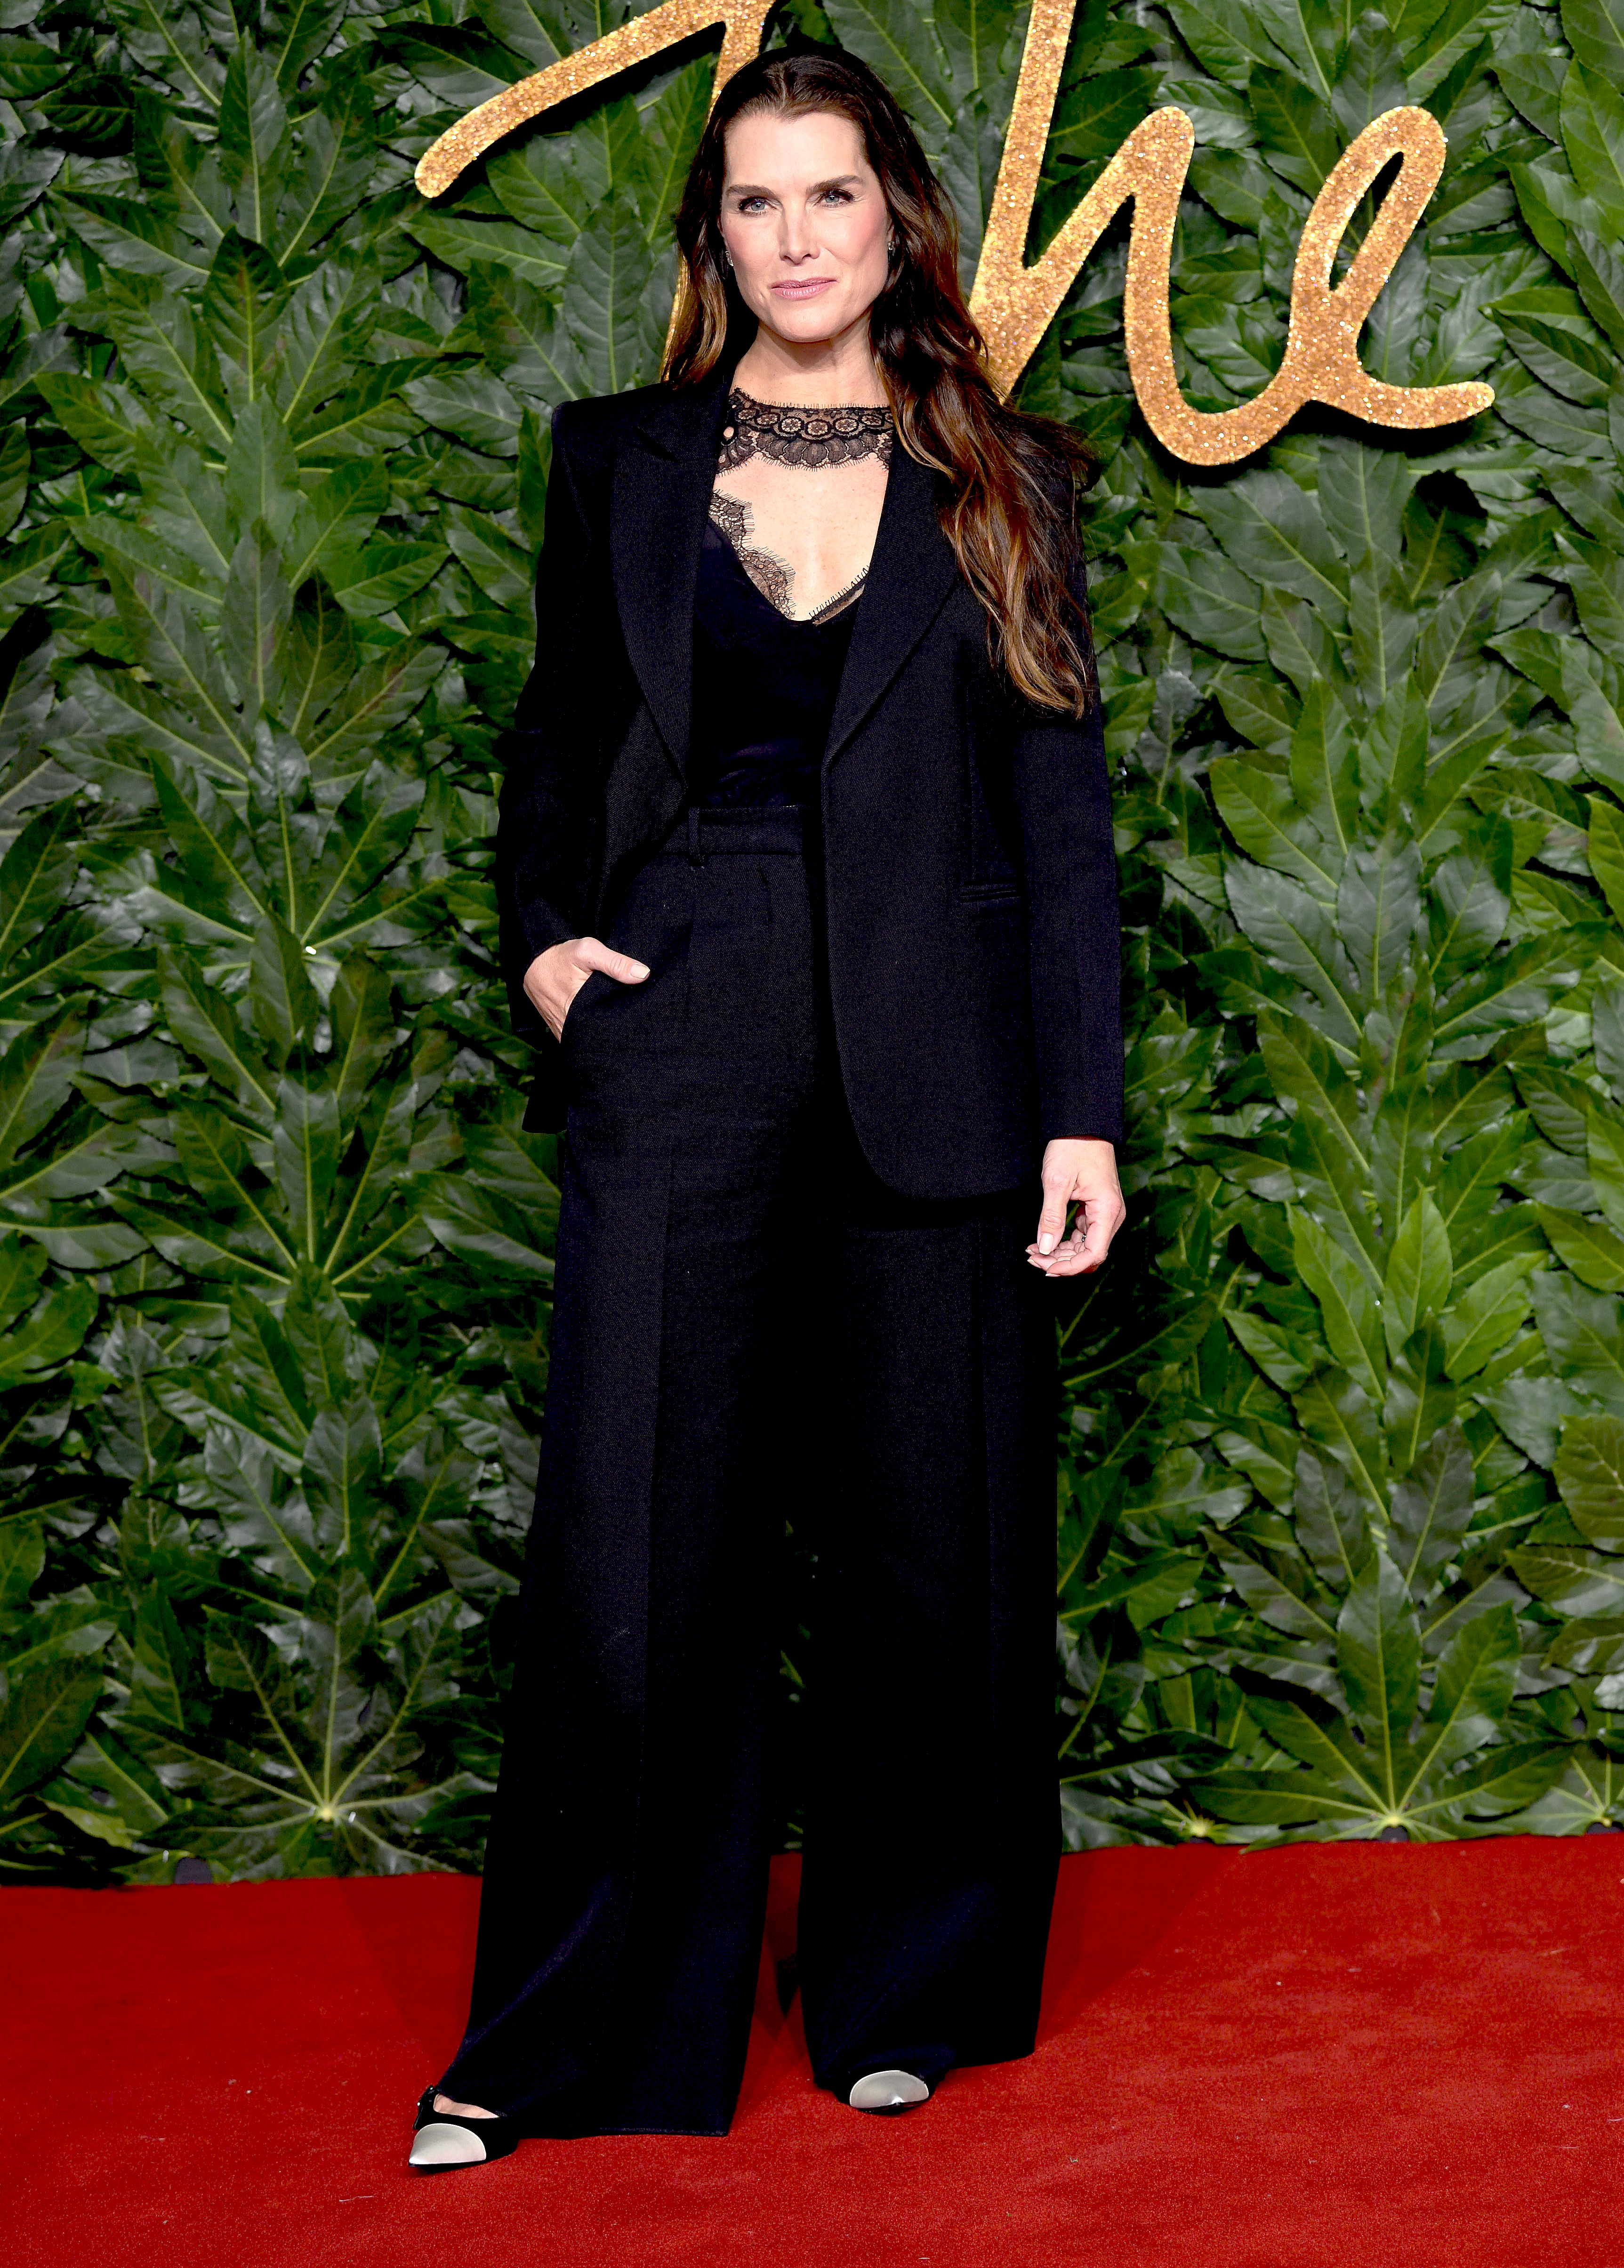 brooke-shields - The catwalk queen was all kinds of boss lady chic in a lace-trimmed Victoria Beckham suit.